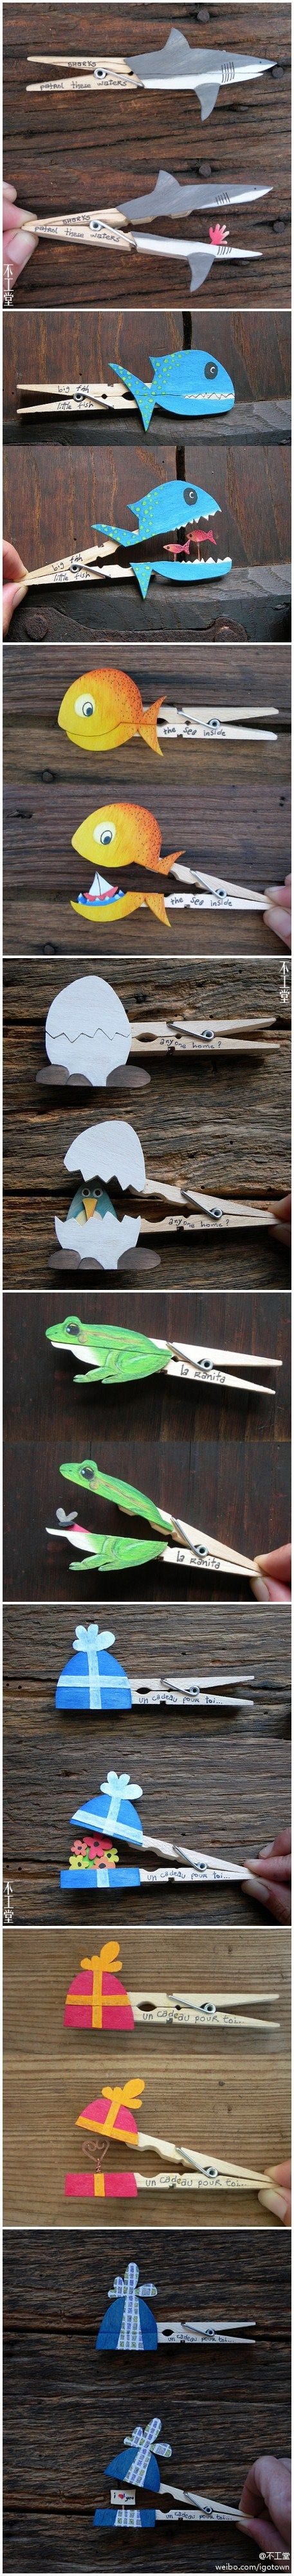 Ideas : Cute Craft for the Kids